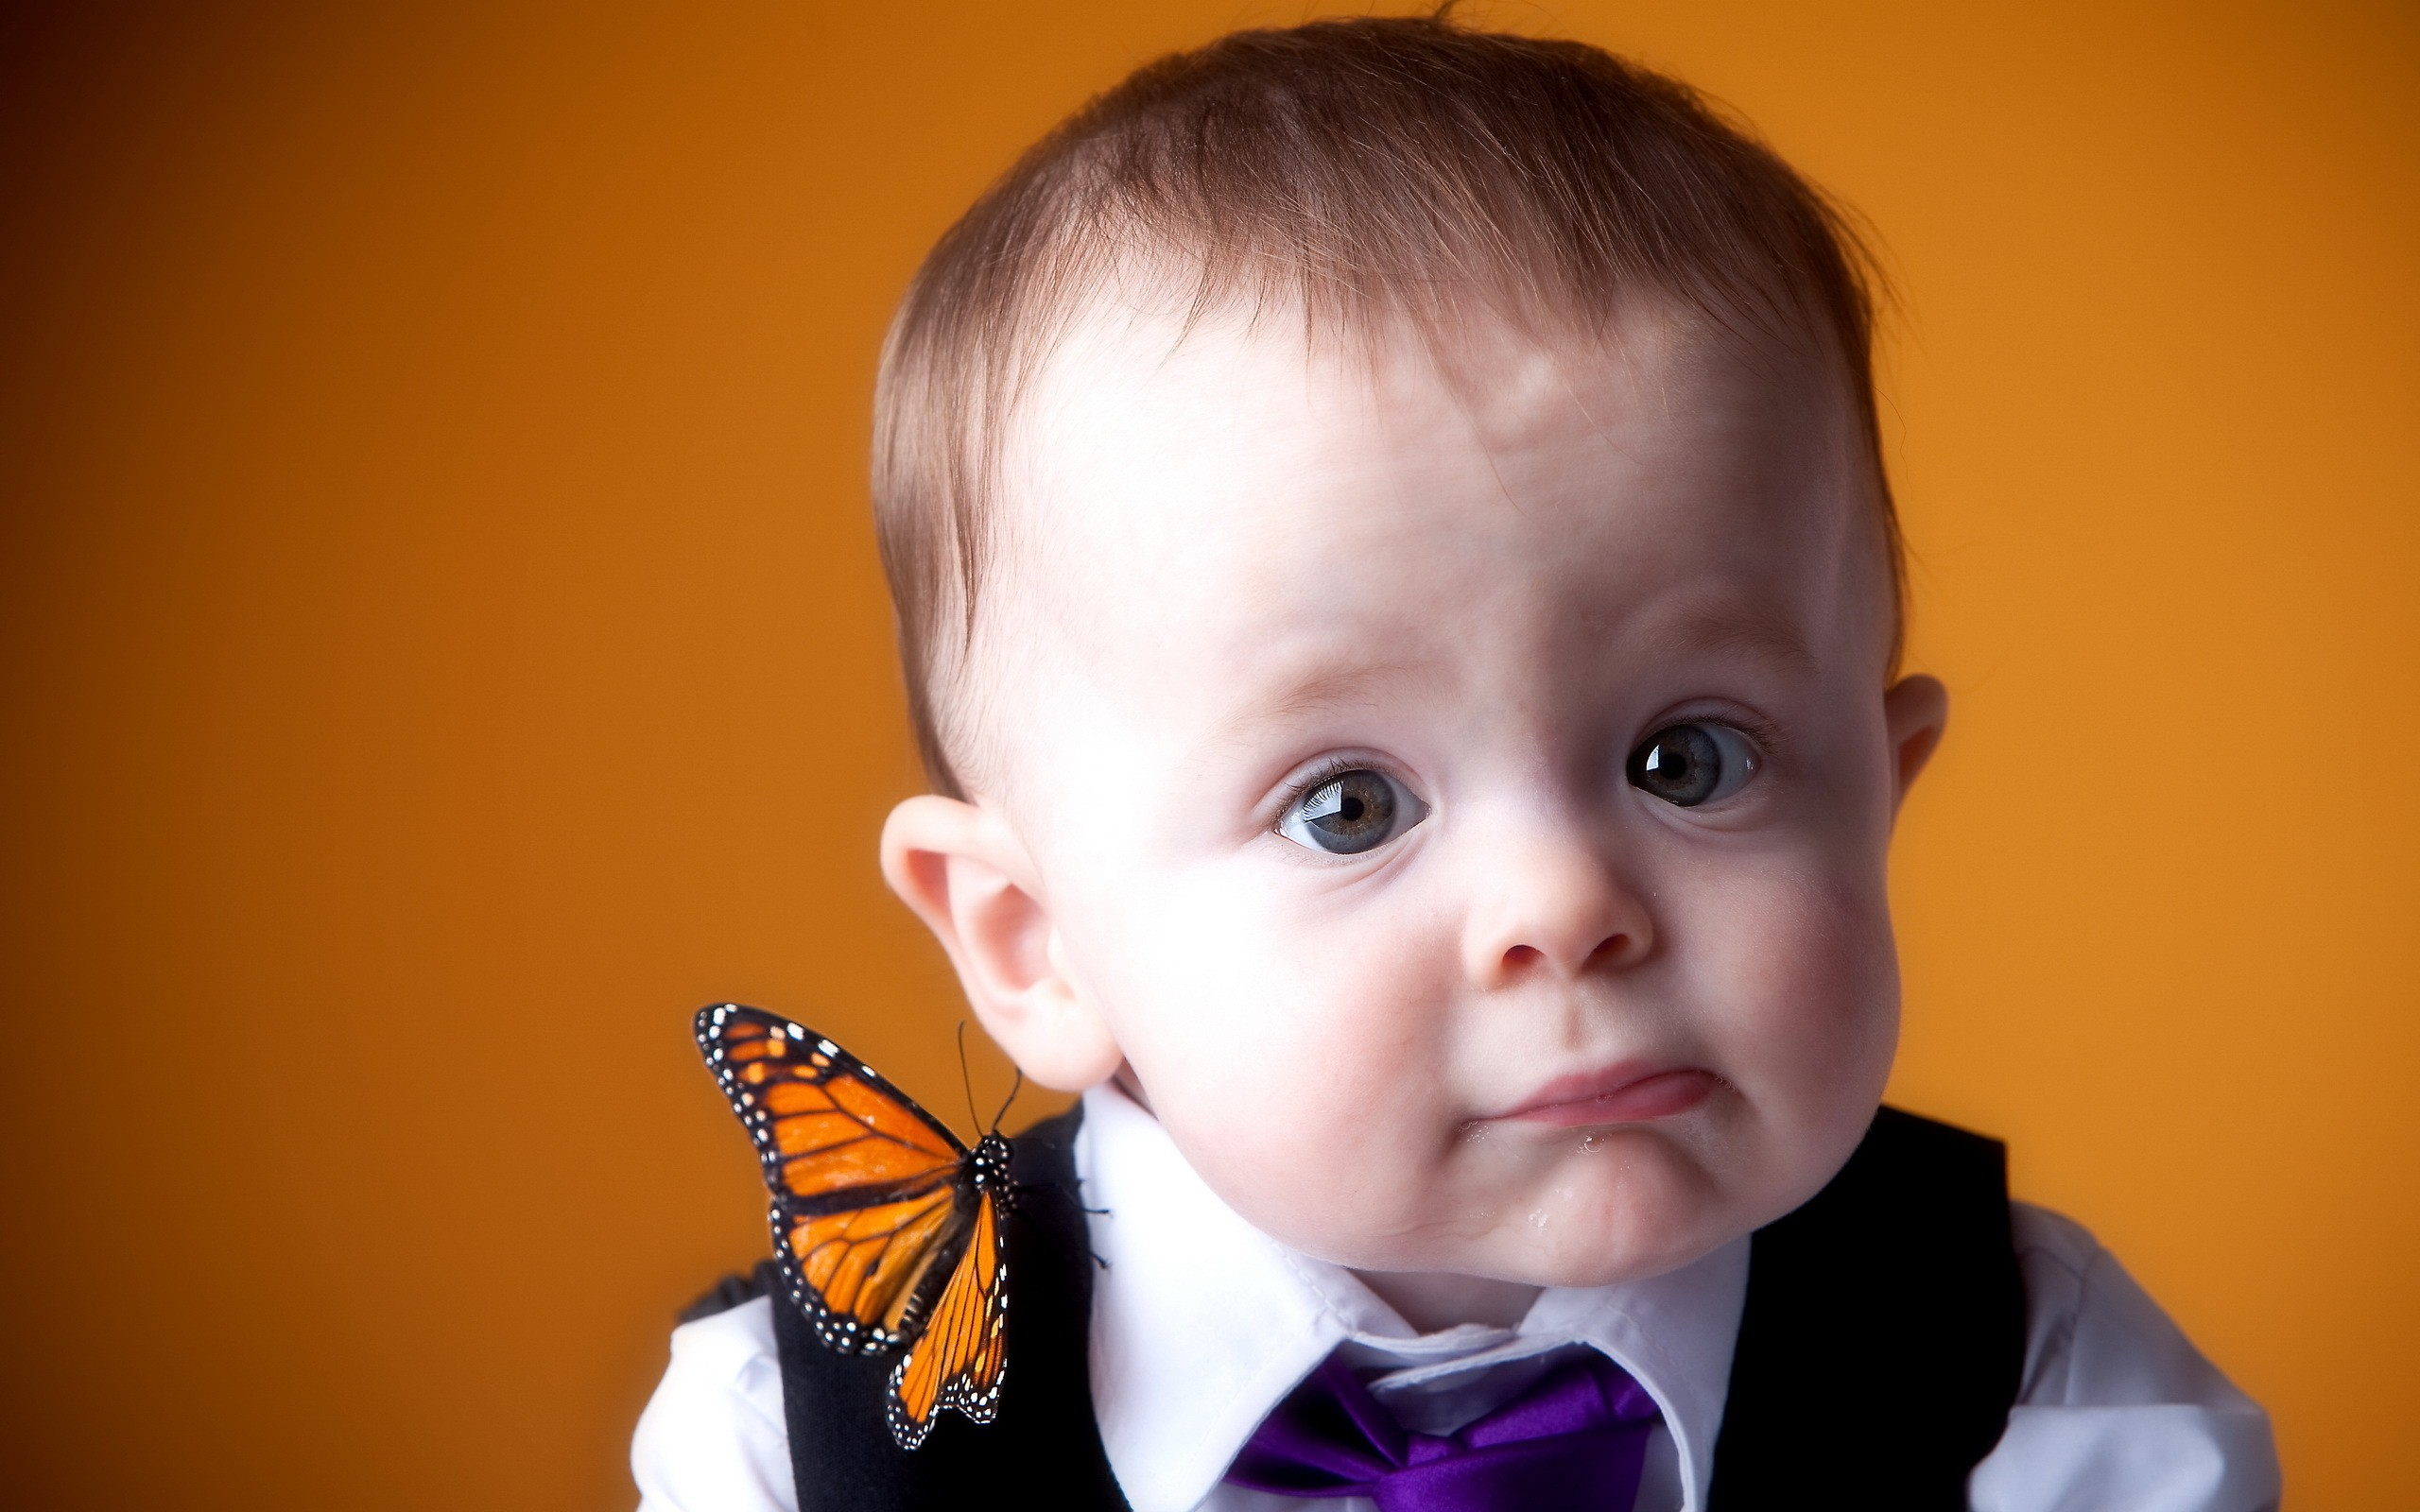 an orange butterfly on the shoulder of cute baby wallpaper download